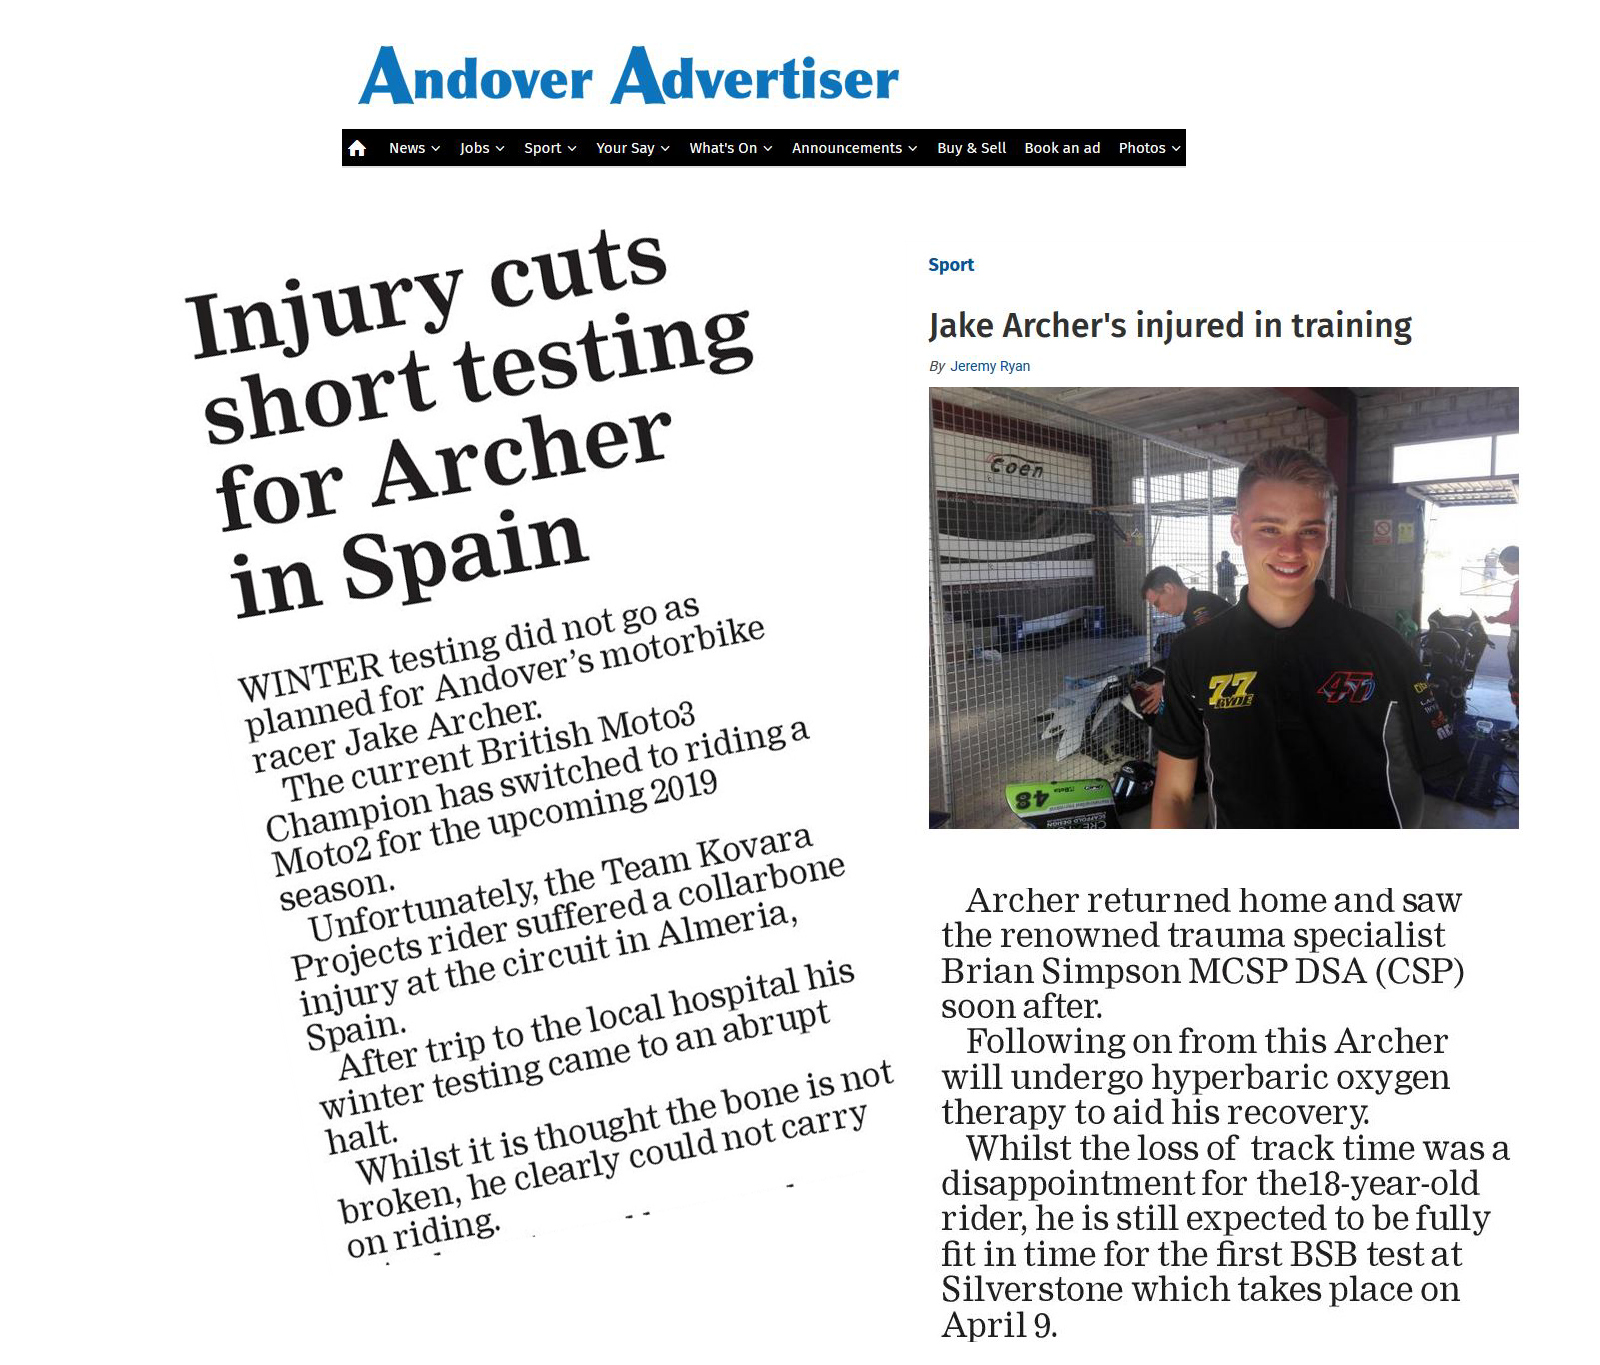 Andover Advertiser 22 March 2019